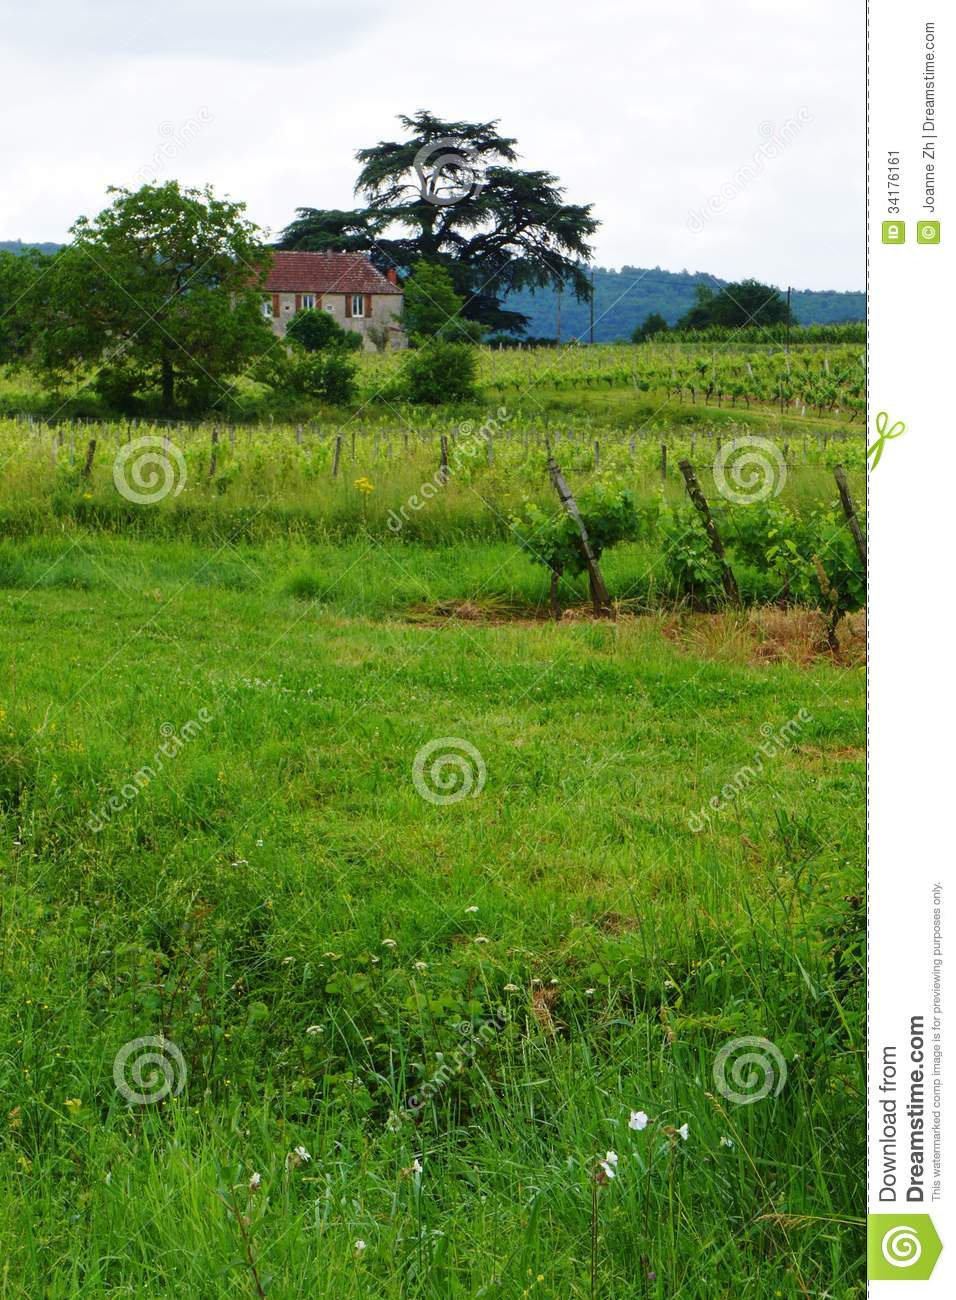 Fire lookout towers in the united states likewise 345919 as well Stock Image Stone House Vine Yard France Photograph Showing Rustic Old French Country Side Vineyard Front Image34176161 likewise Stucco likewise Latilla Ceilings. on southwest house plans